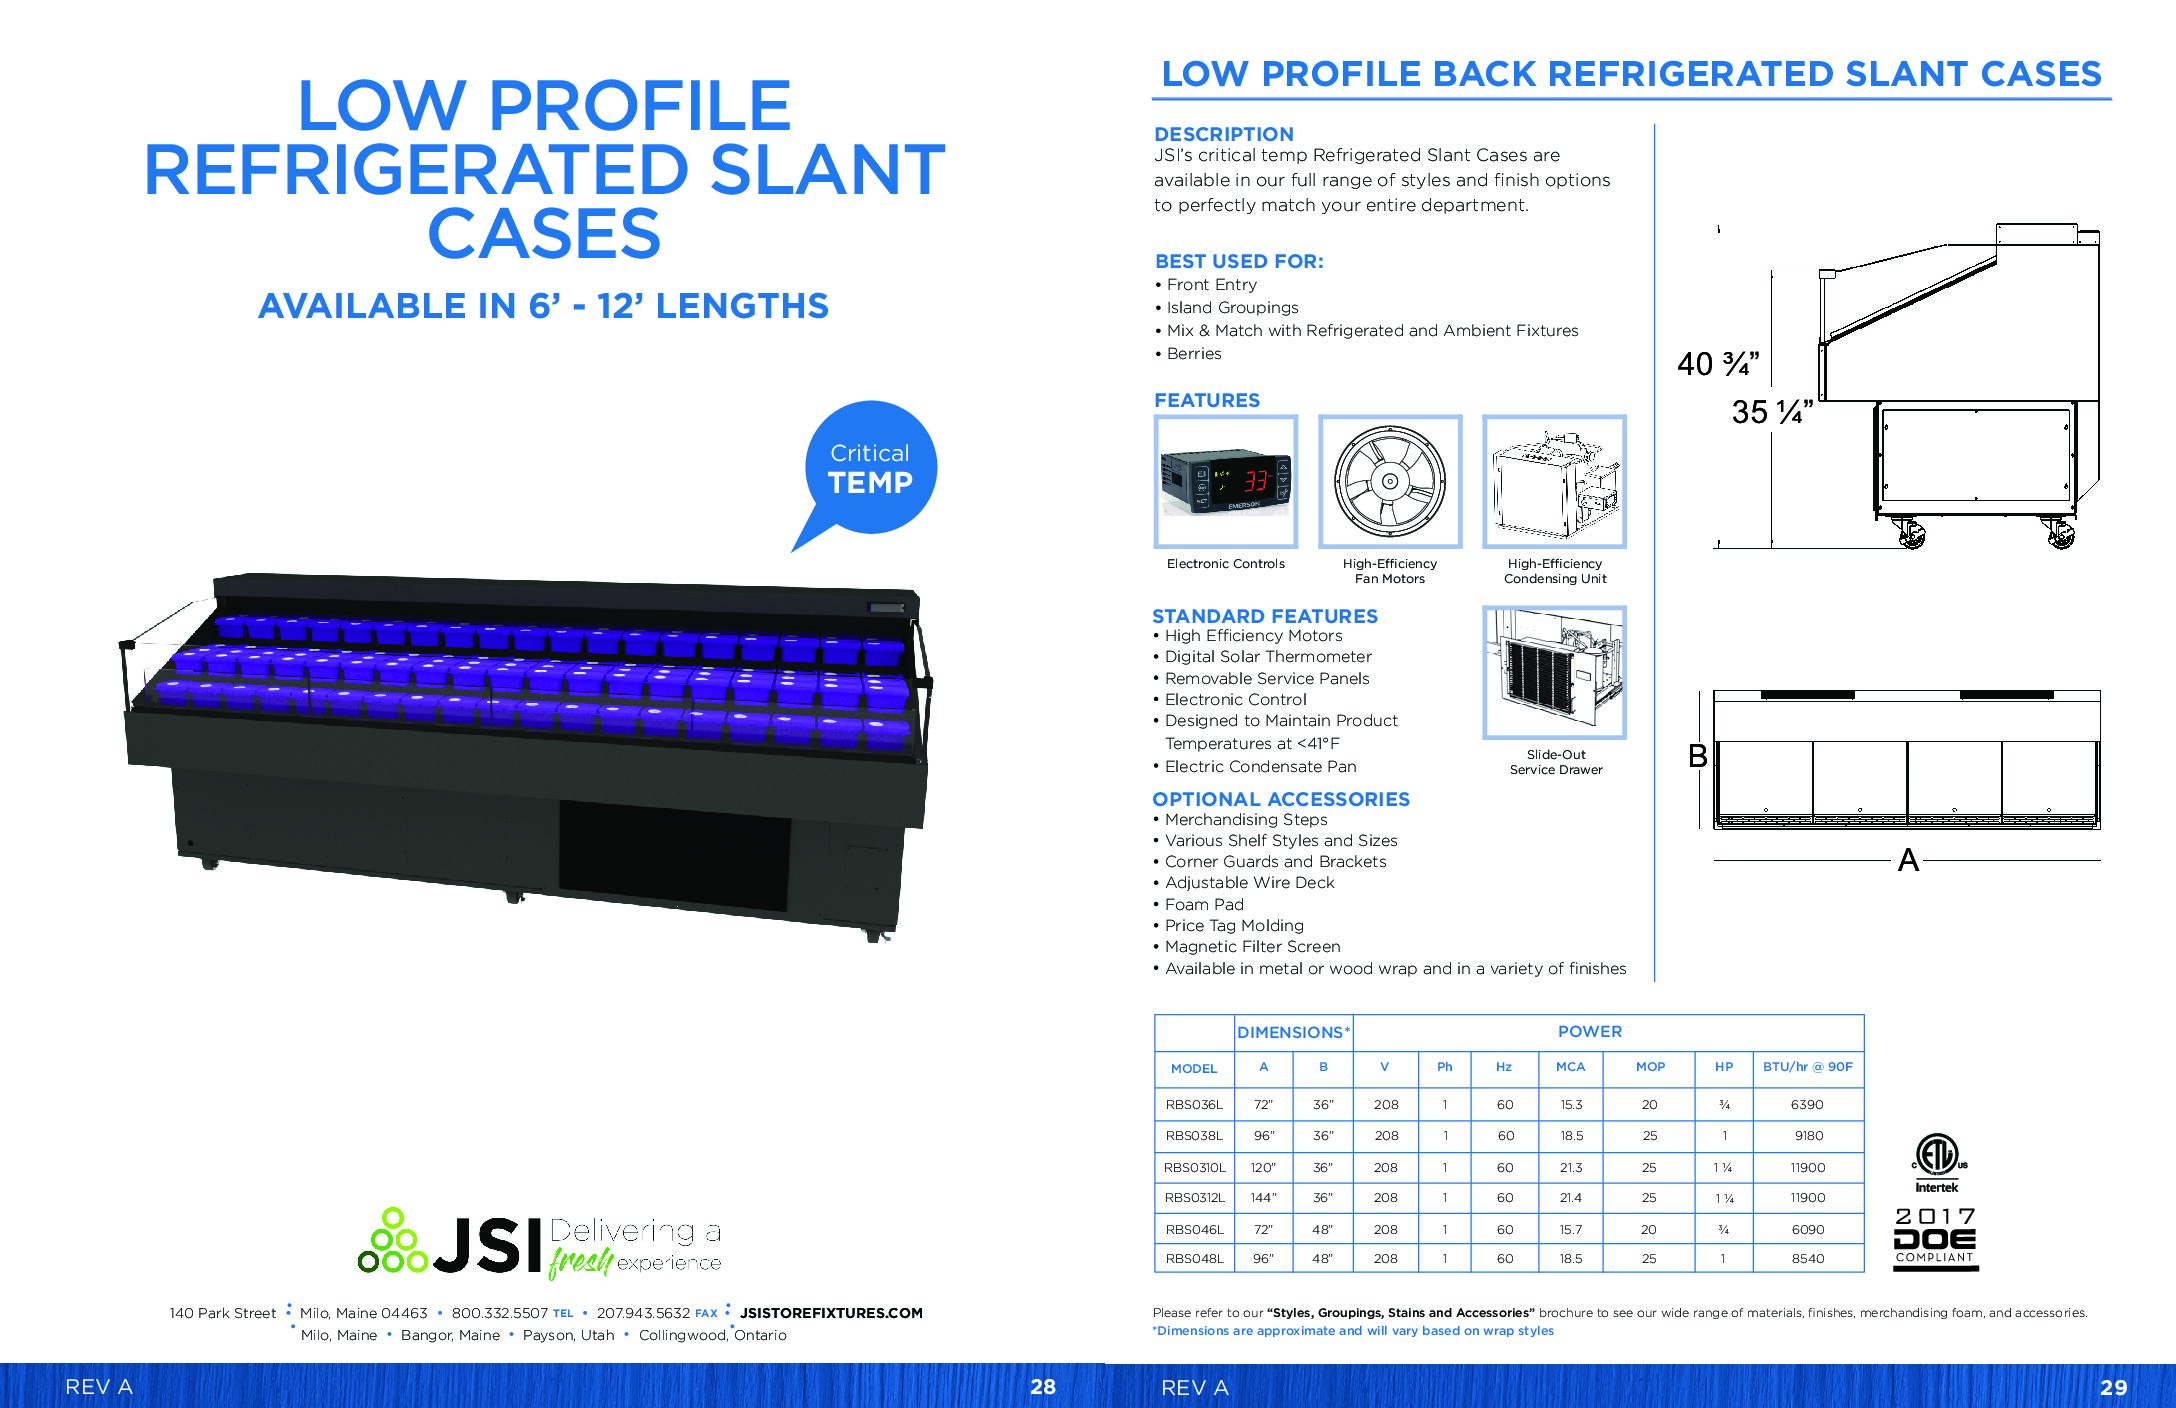 Low Profile Refrigerated Slant Cases 6ft-12ft (PDF)